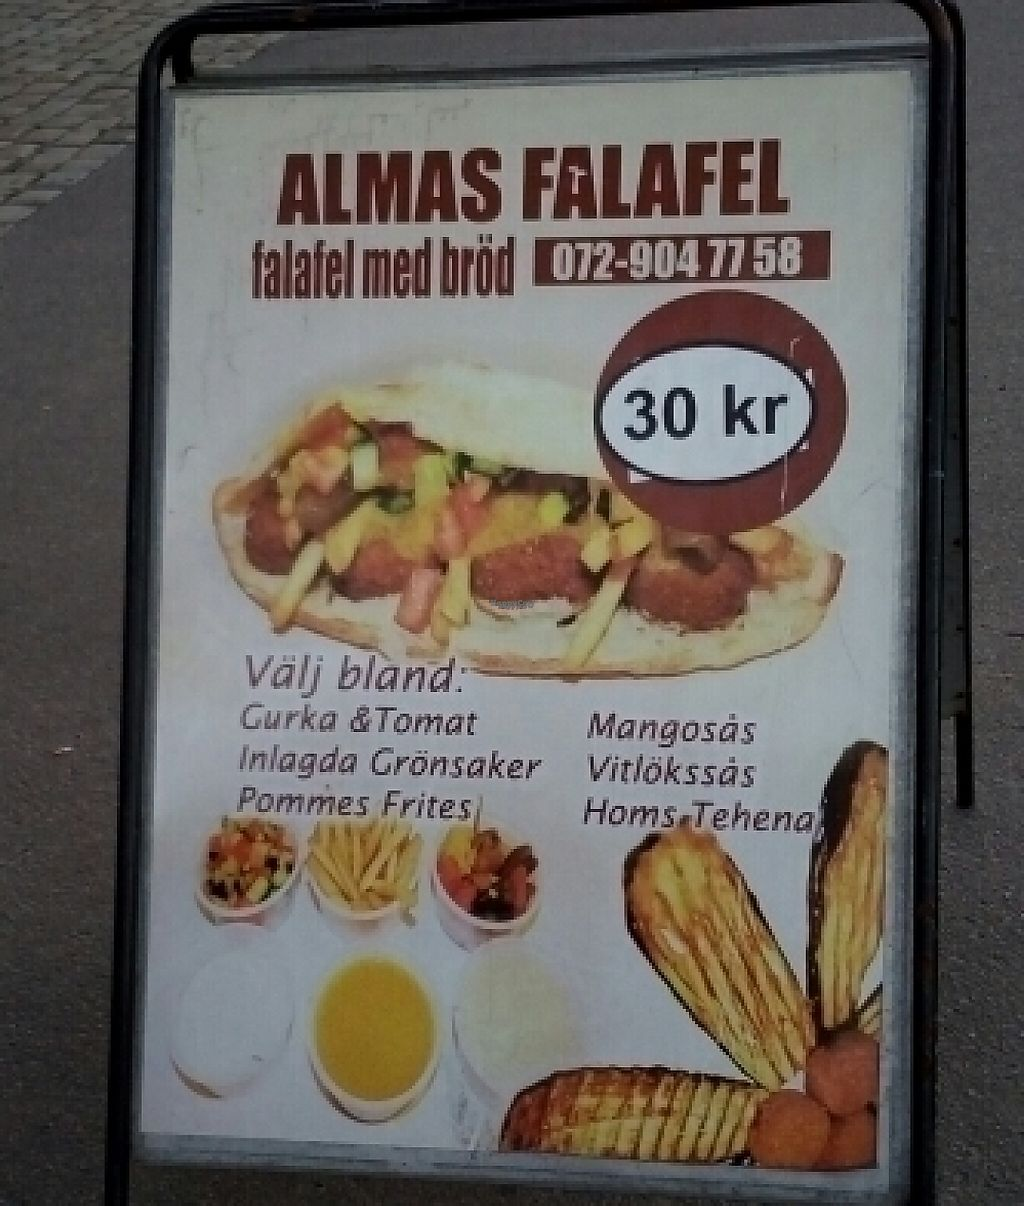 """Photo of Almas Falafel - Ryd  by <a href=""""/members/profile/grasseater76"""">grasseater76</a> <br/>poster  <br/> August 27, 2016  - <a href='/contact/abuse/image/79189/244138'>Report</a>"""